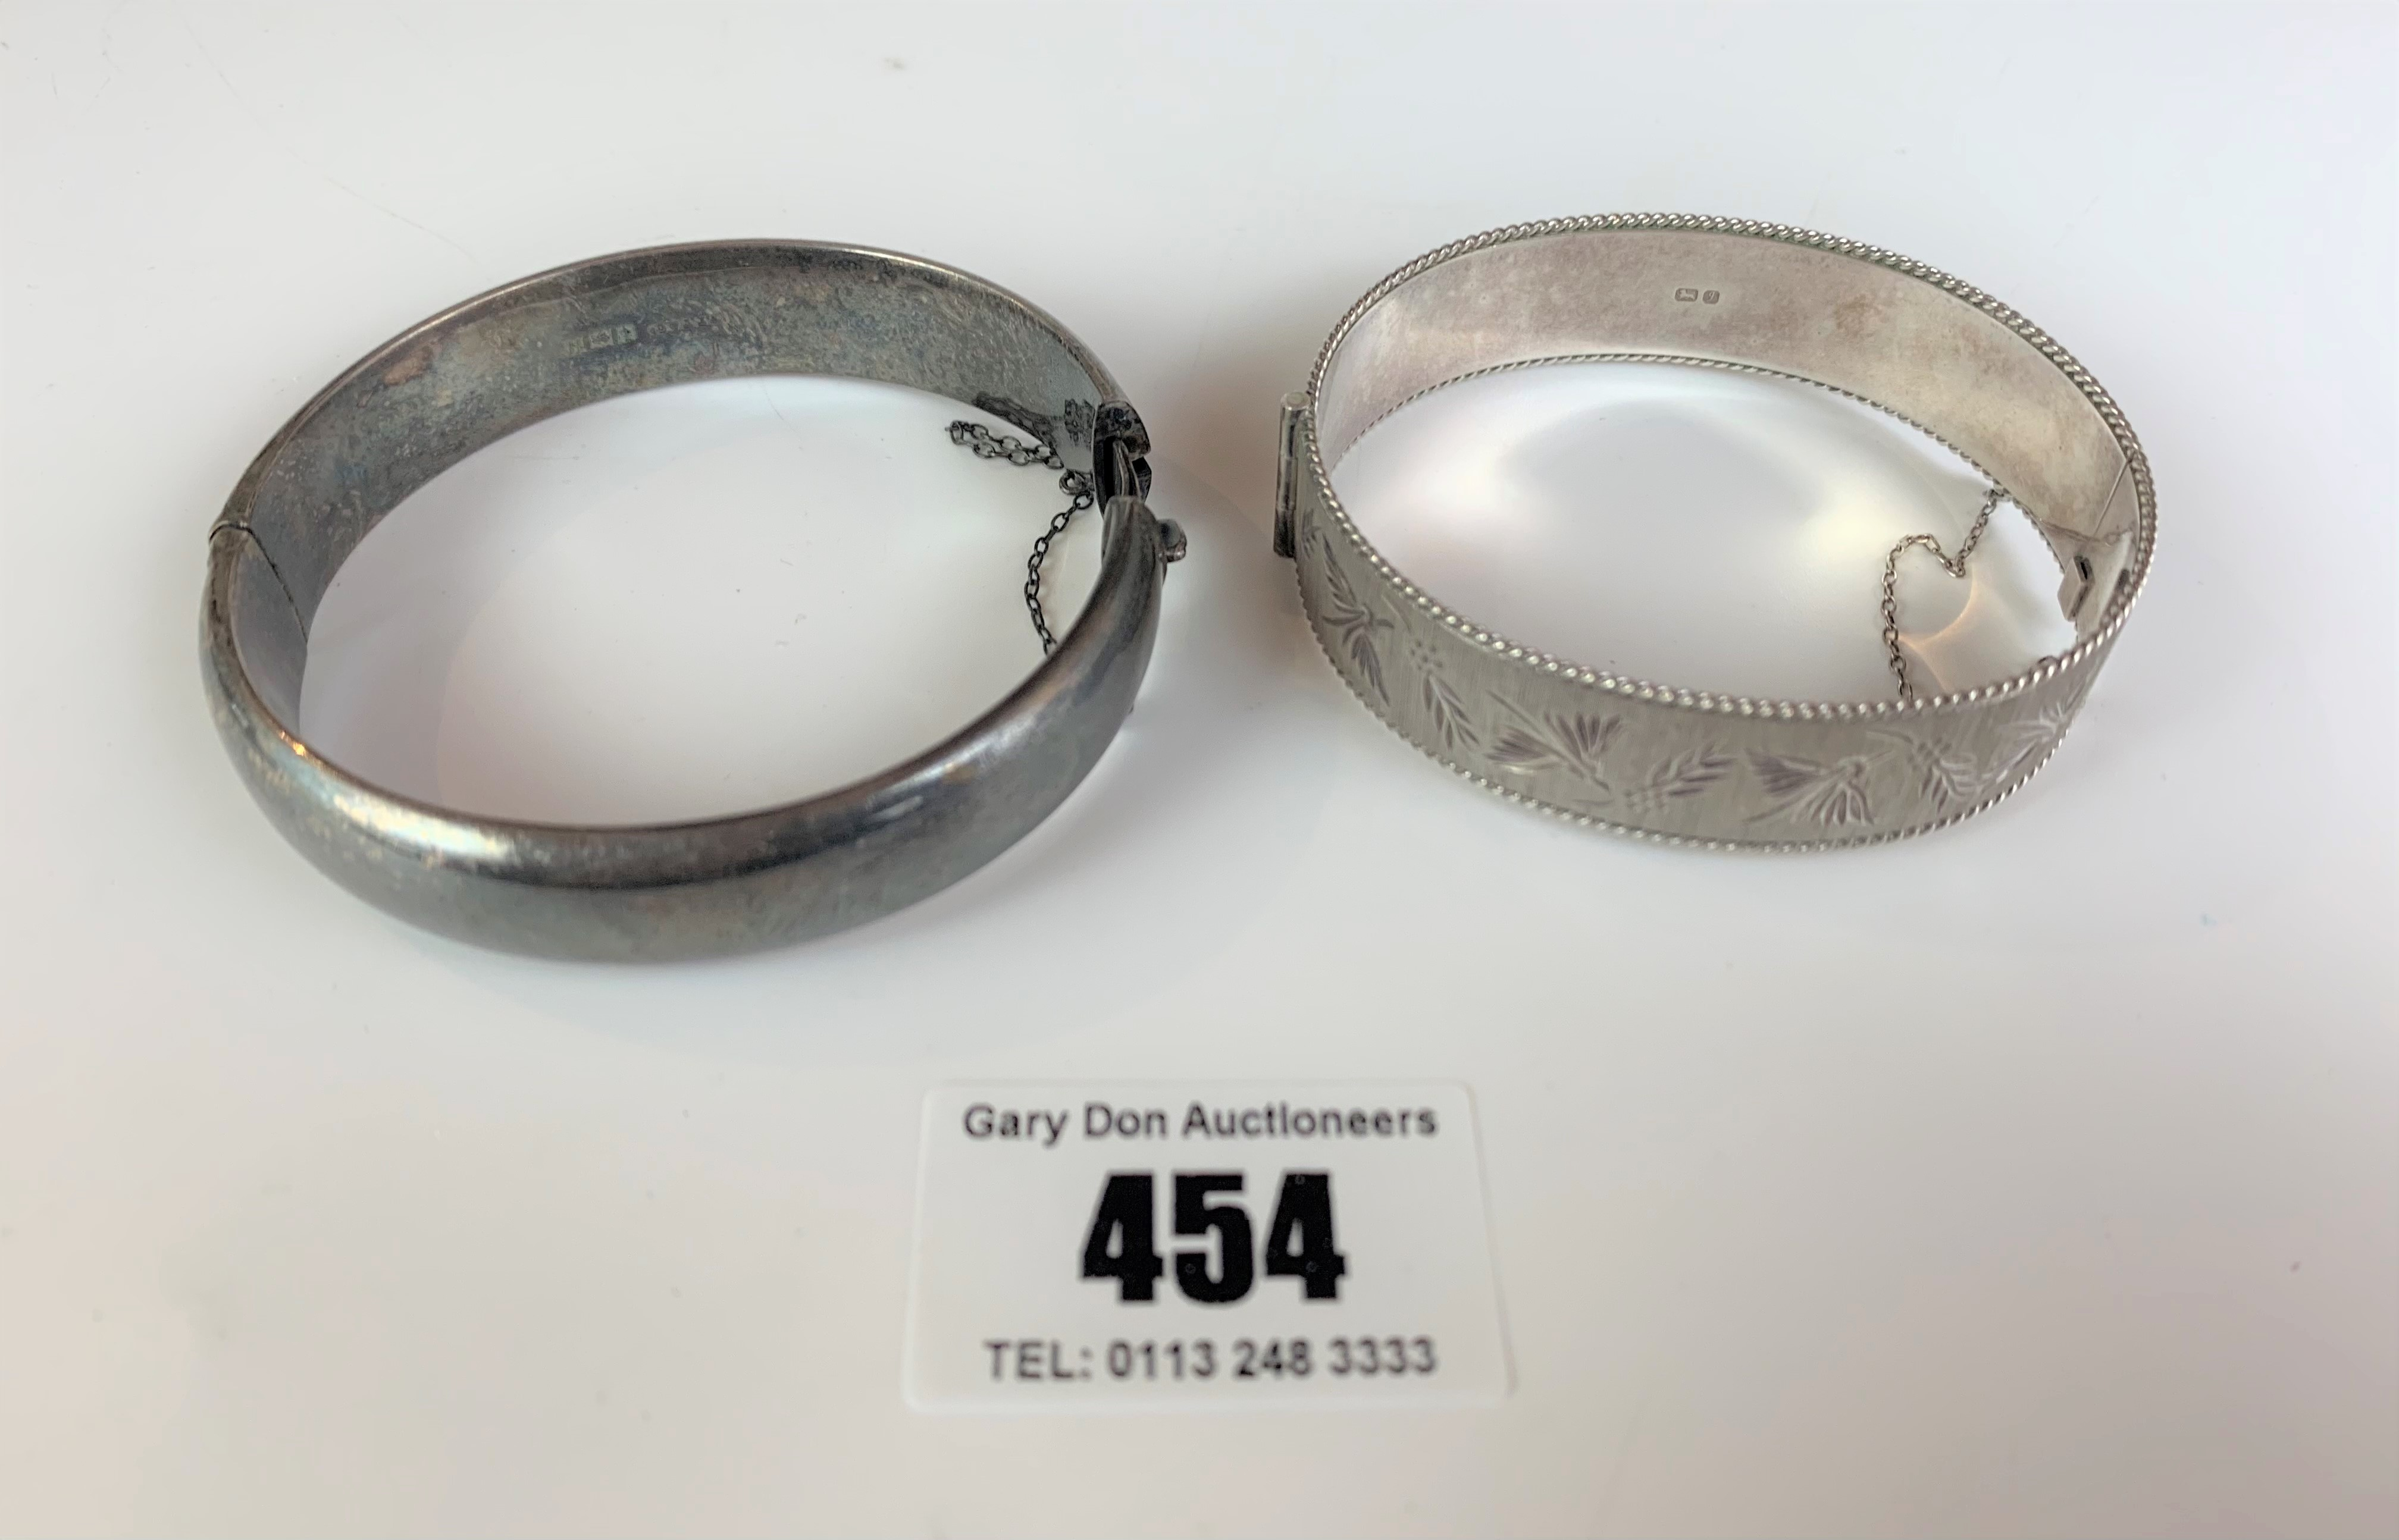 2 silver engraved bangles, total w: 1.5 ozt